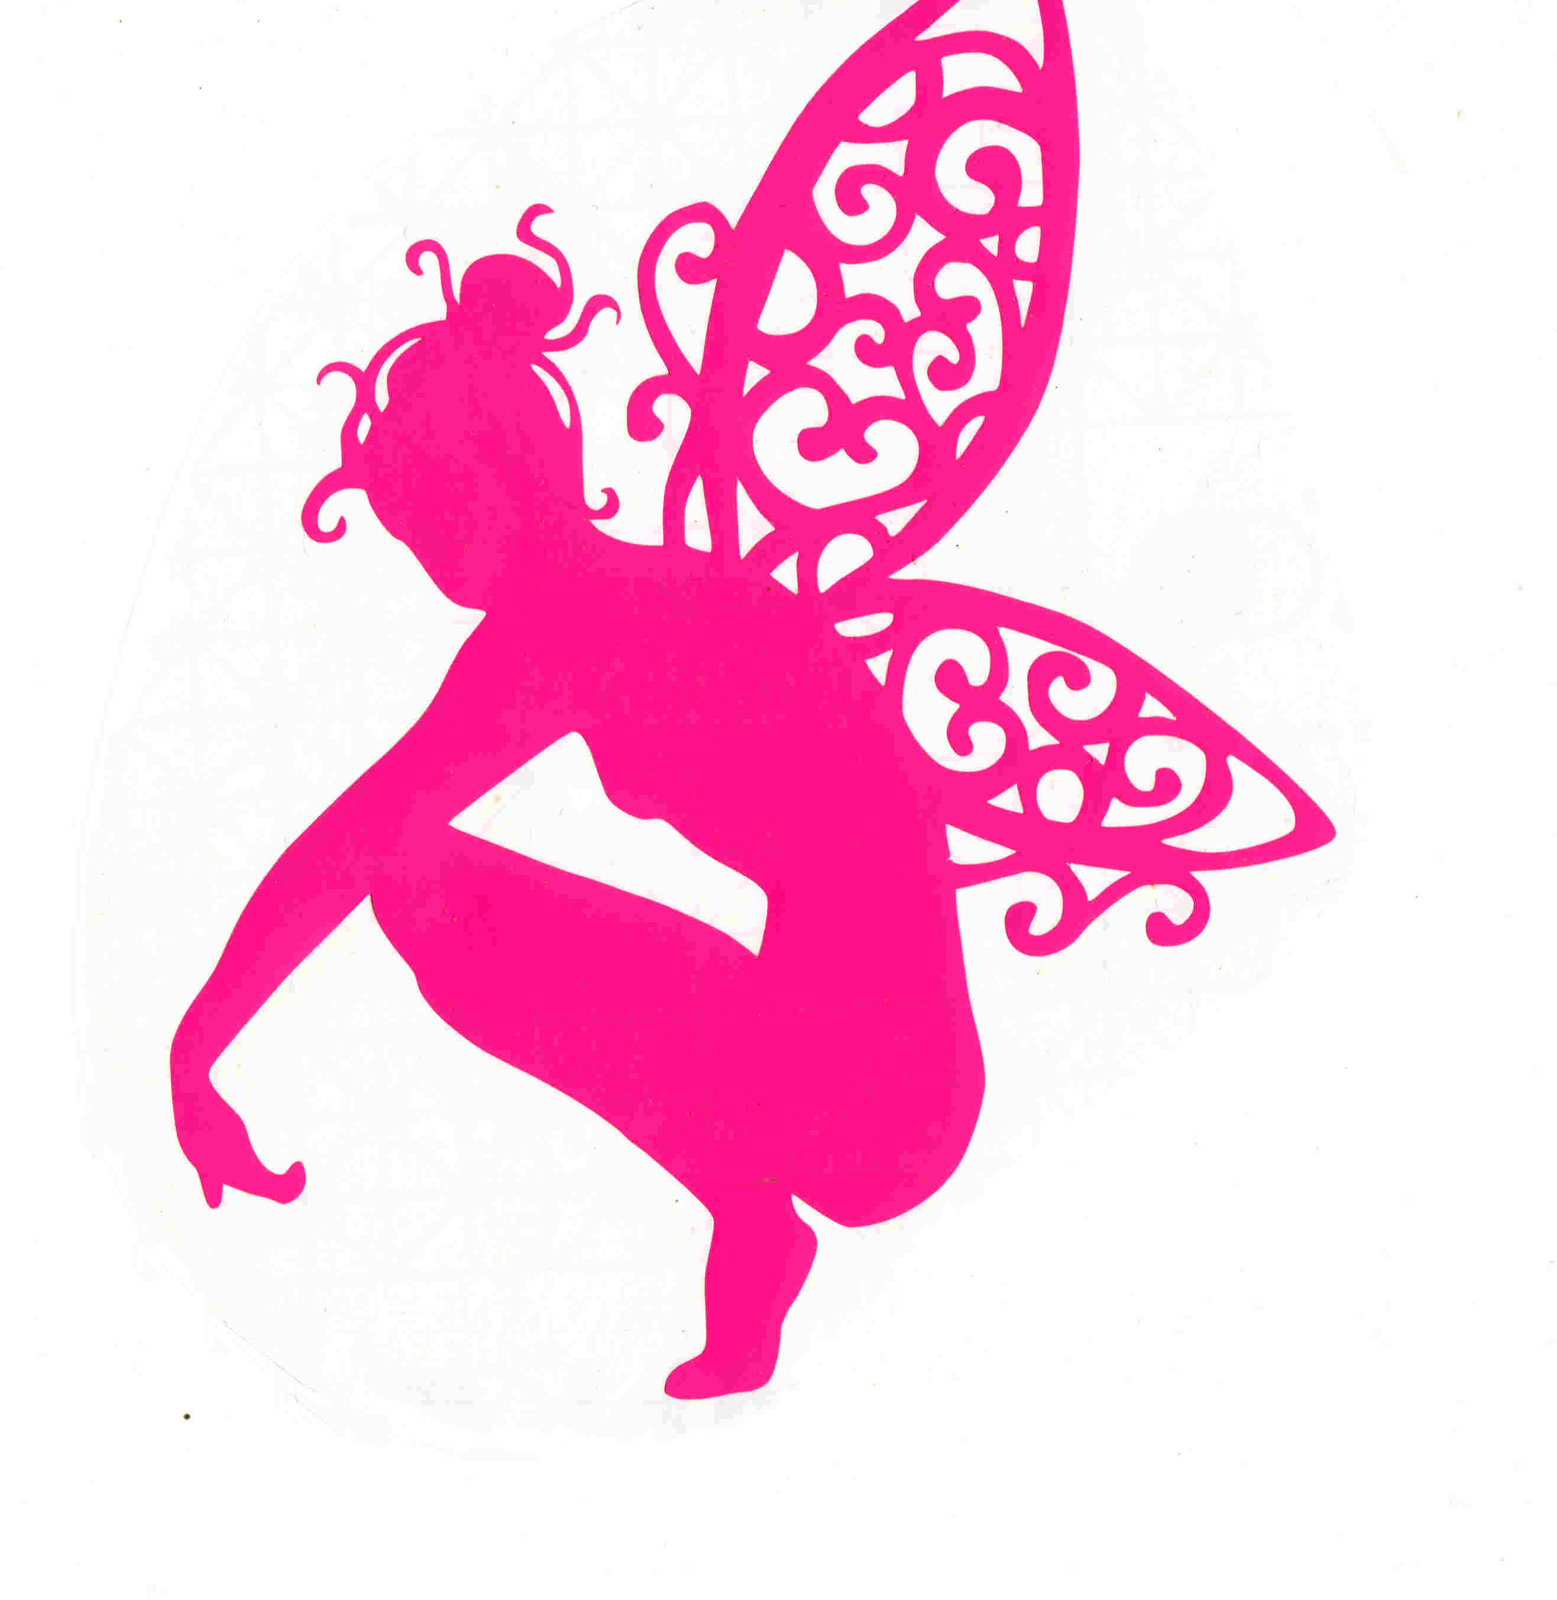 pink or white fairy decal ideal cars, trucks, home etc easy to apply